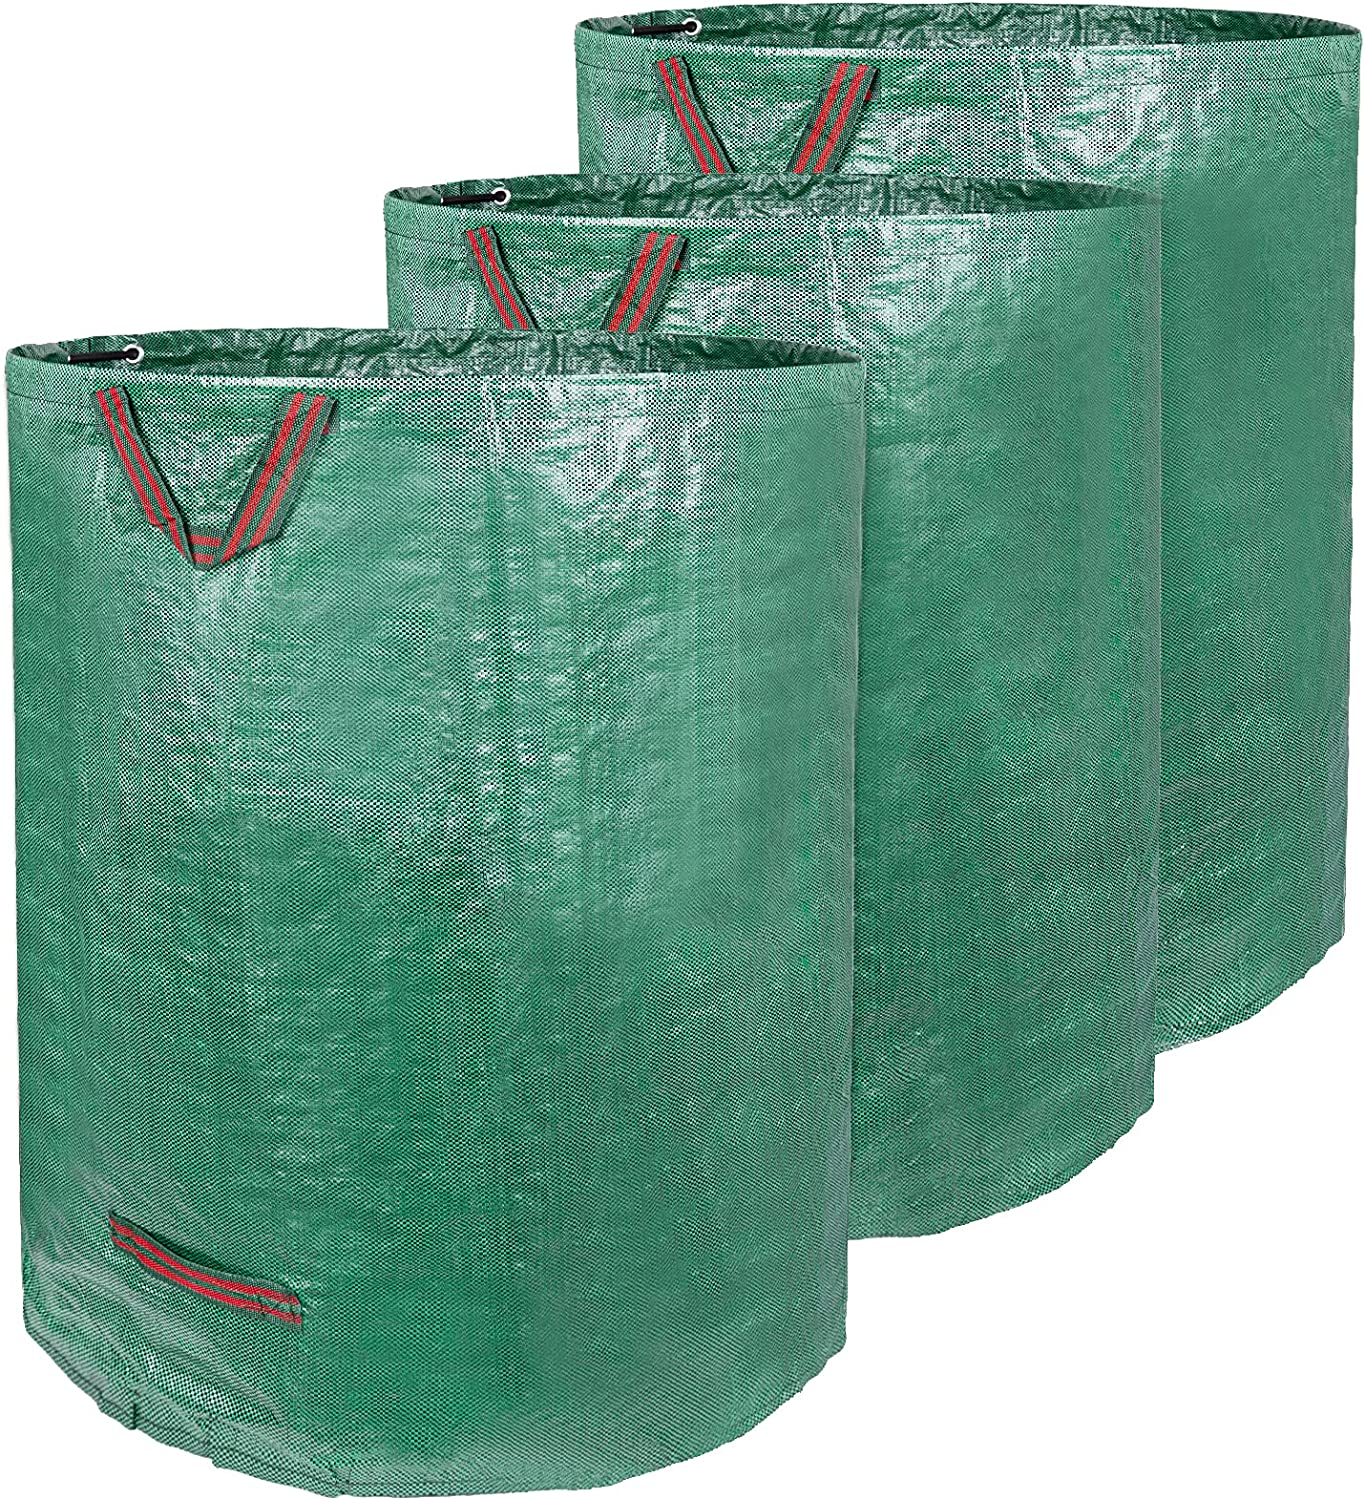 Future Way 132 Gal Reusable Yard Waste Bag, Heavy Duty Collapsible Garden Bag with Double Bottom Layers and Carrying Handle, Extra Large Lawn Leaf Container